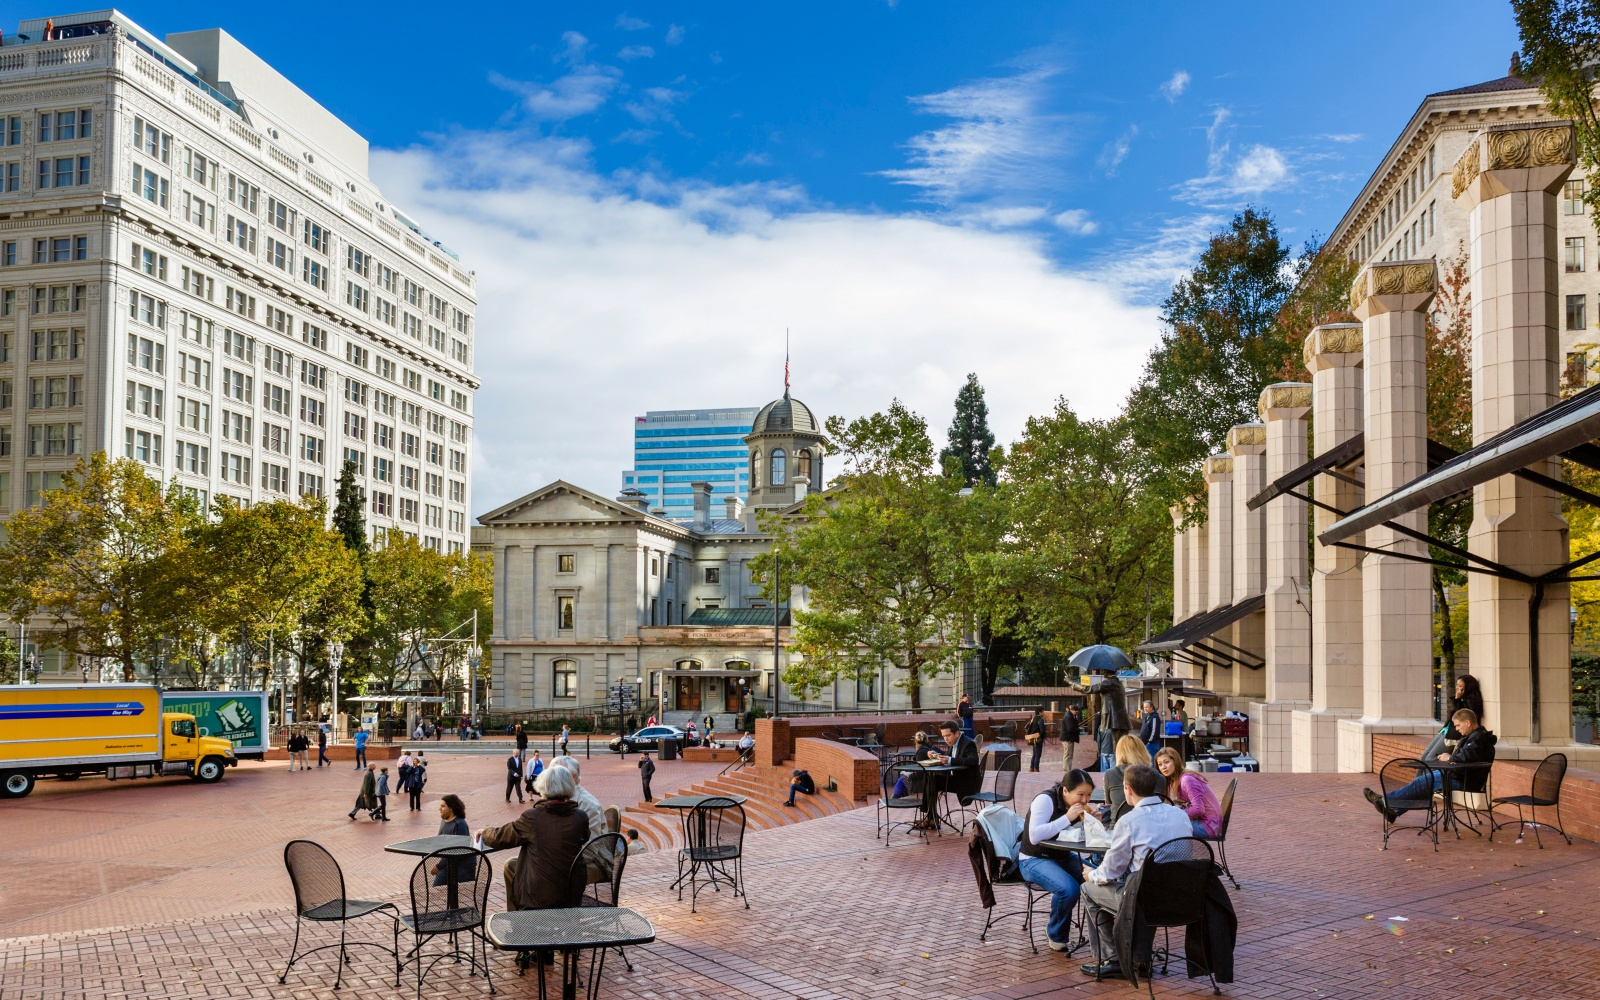 Pioneer Courthouse Square in downtown Portland, Oregon